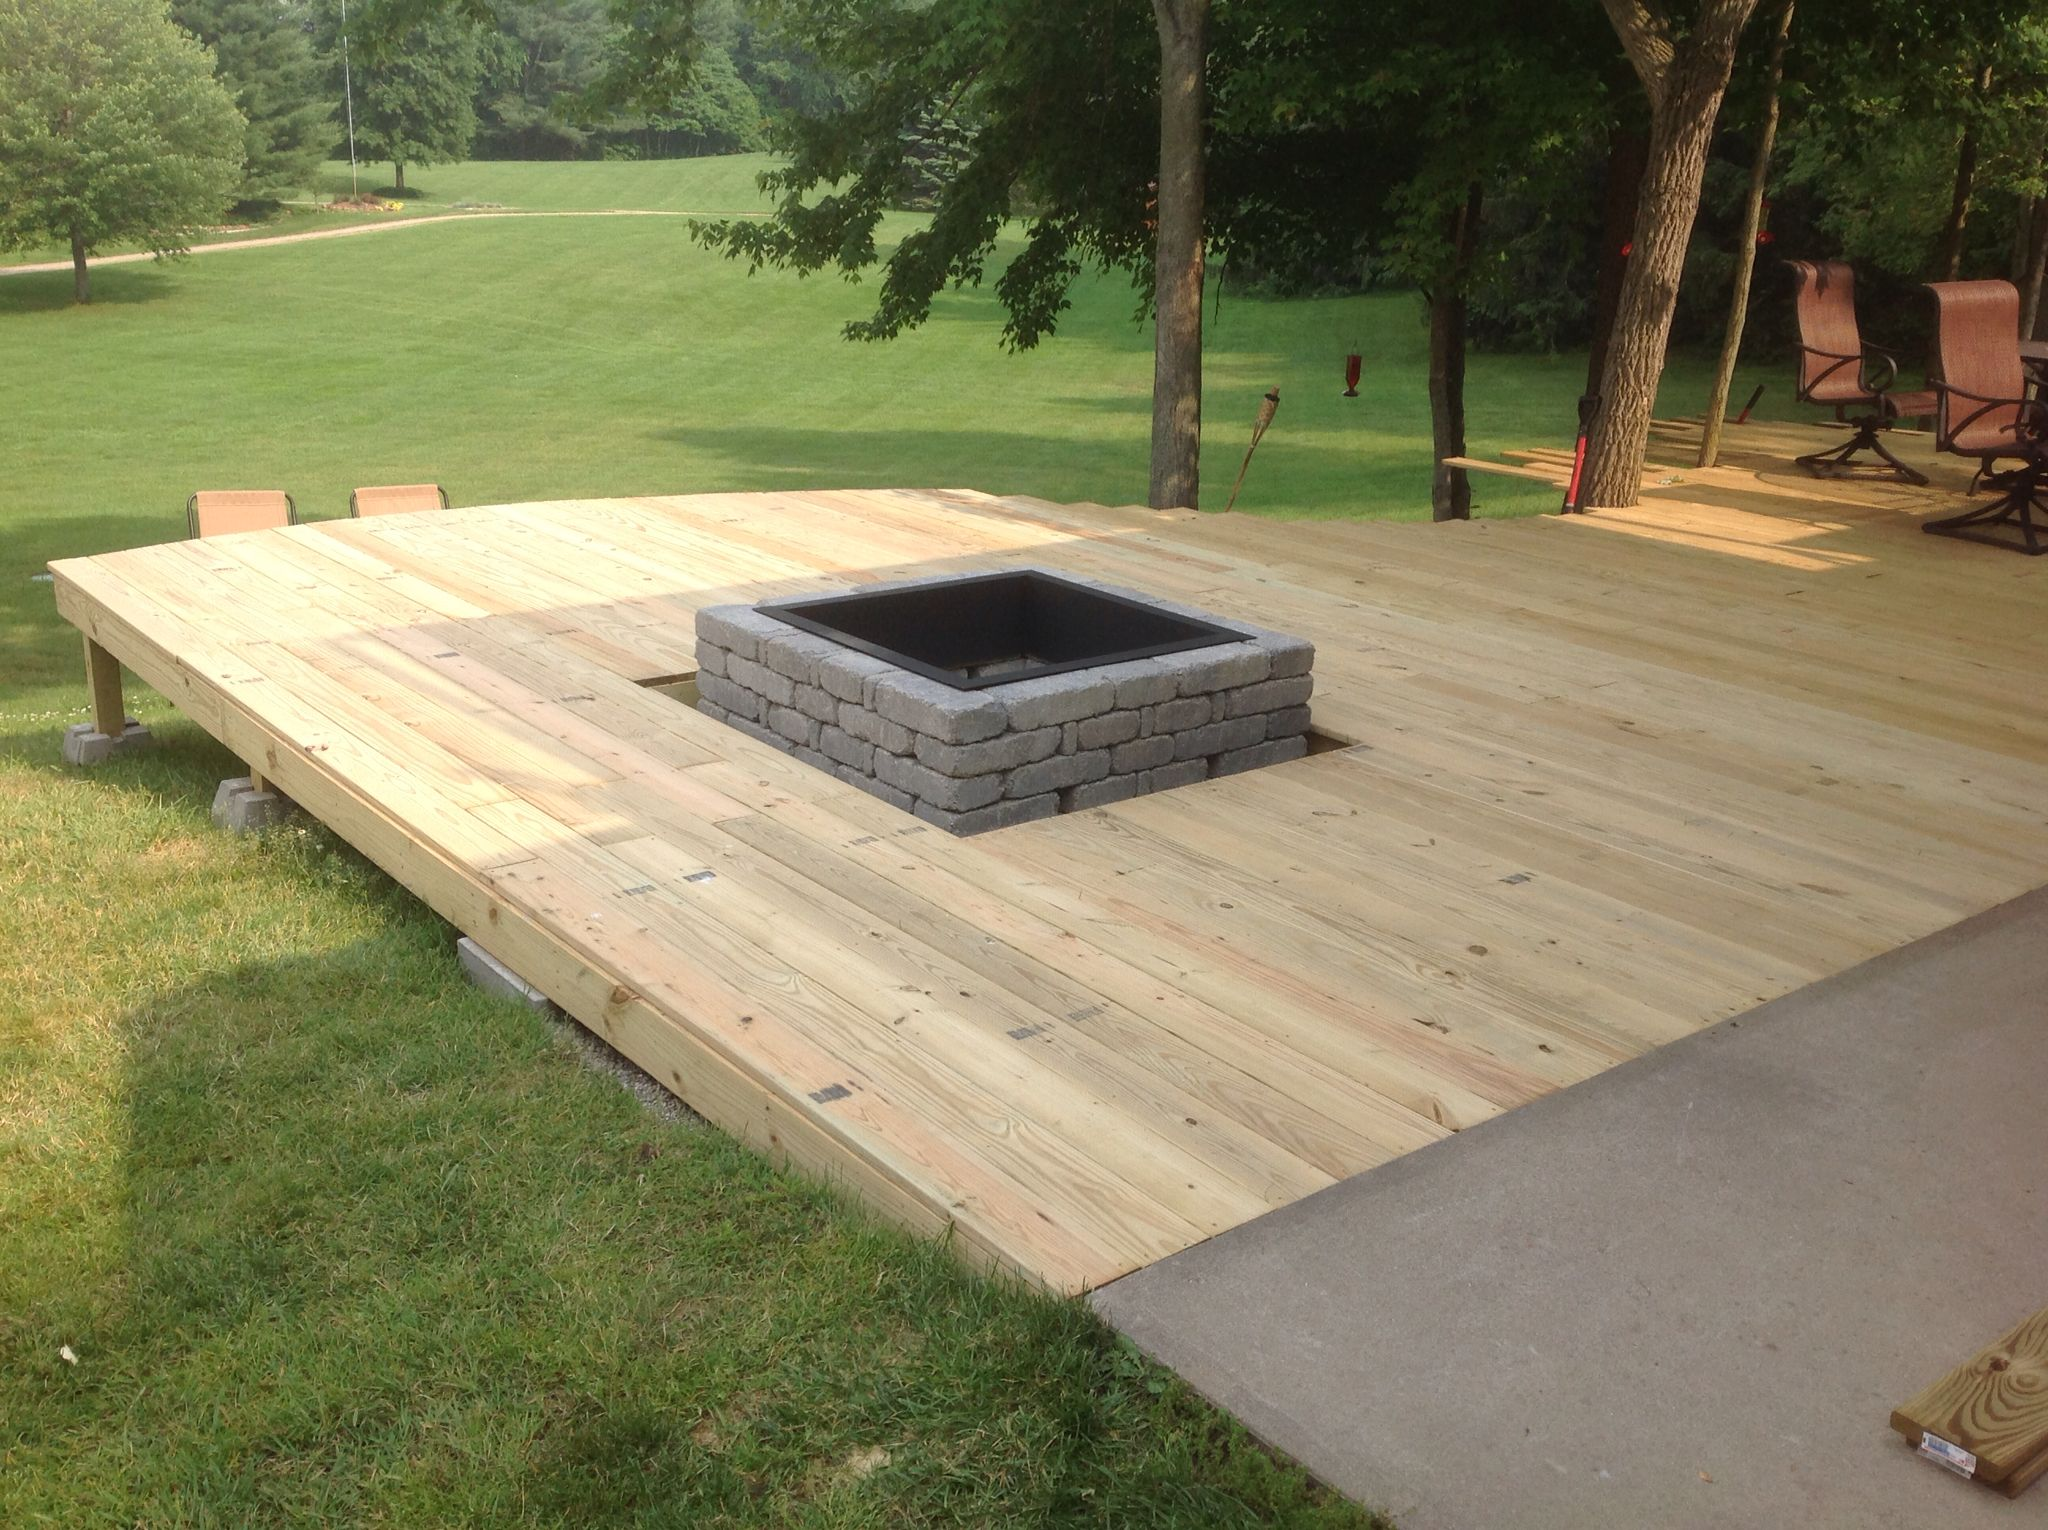 New Built In Fire Pit At Lake Deck Fire Pit Outdoor Fire Pit